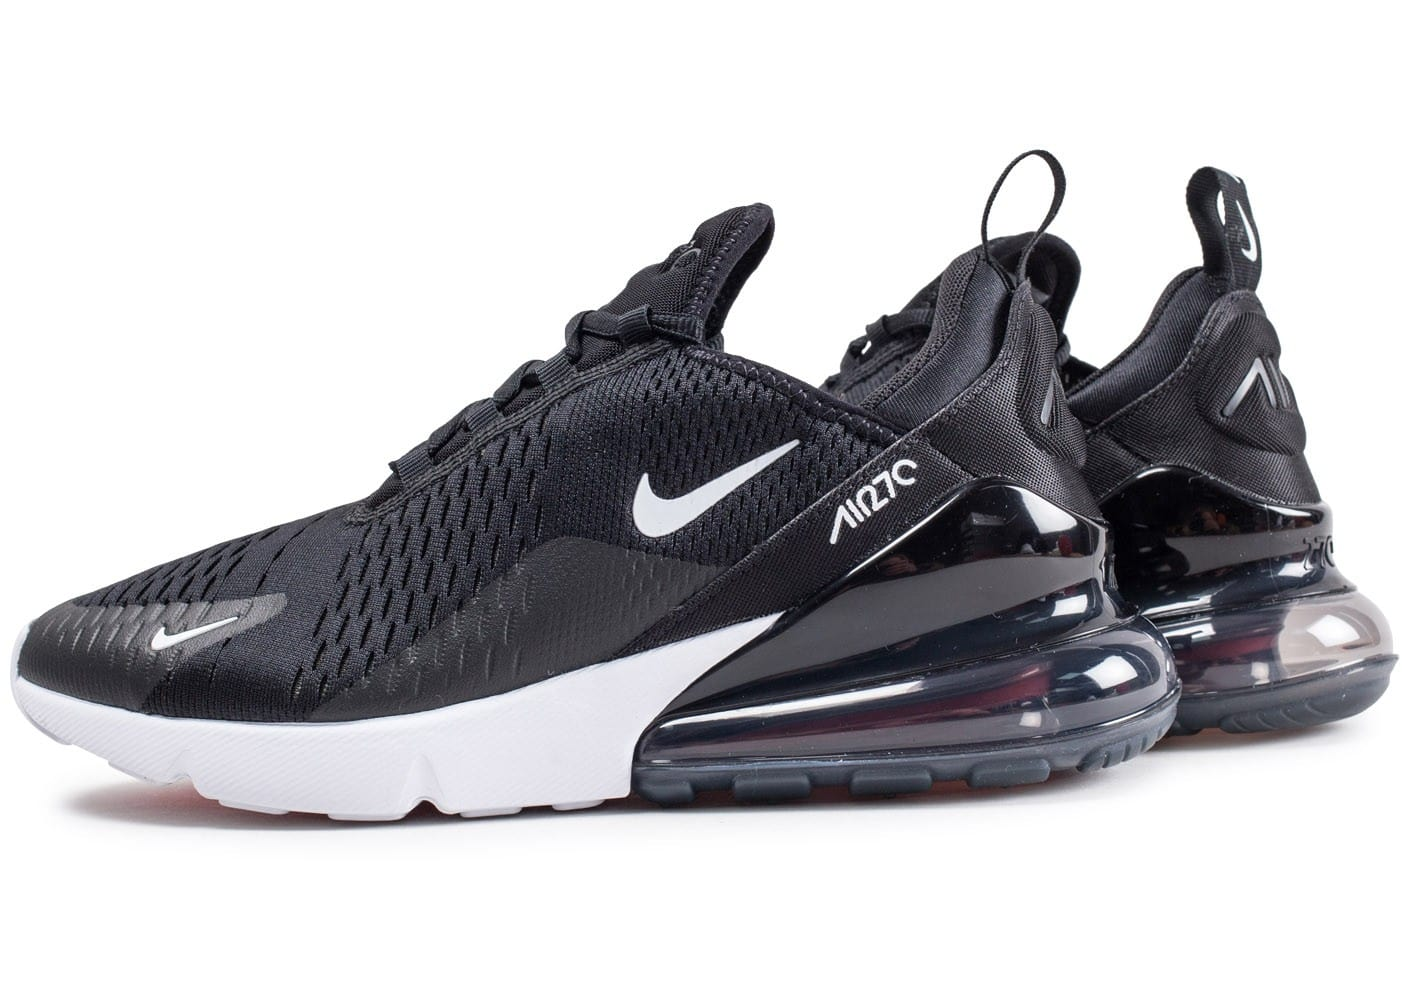 nike air max 270 noire et blanche chaussures homme chausport. Black Bedroom Furniture Sets. Home Design Ideas